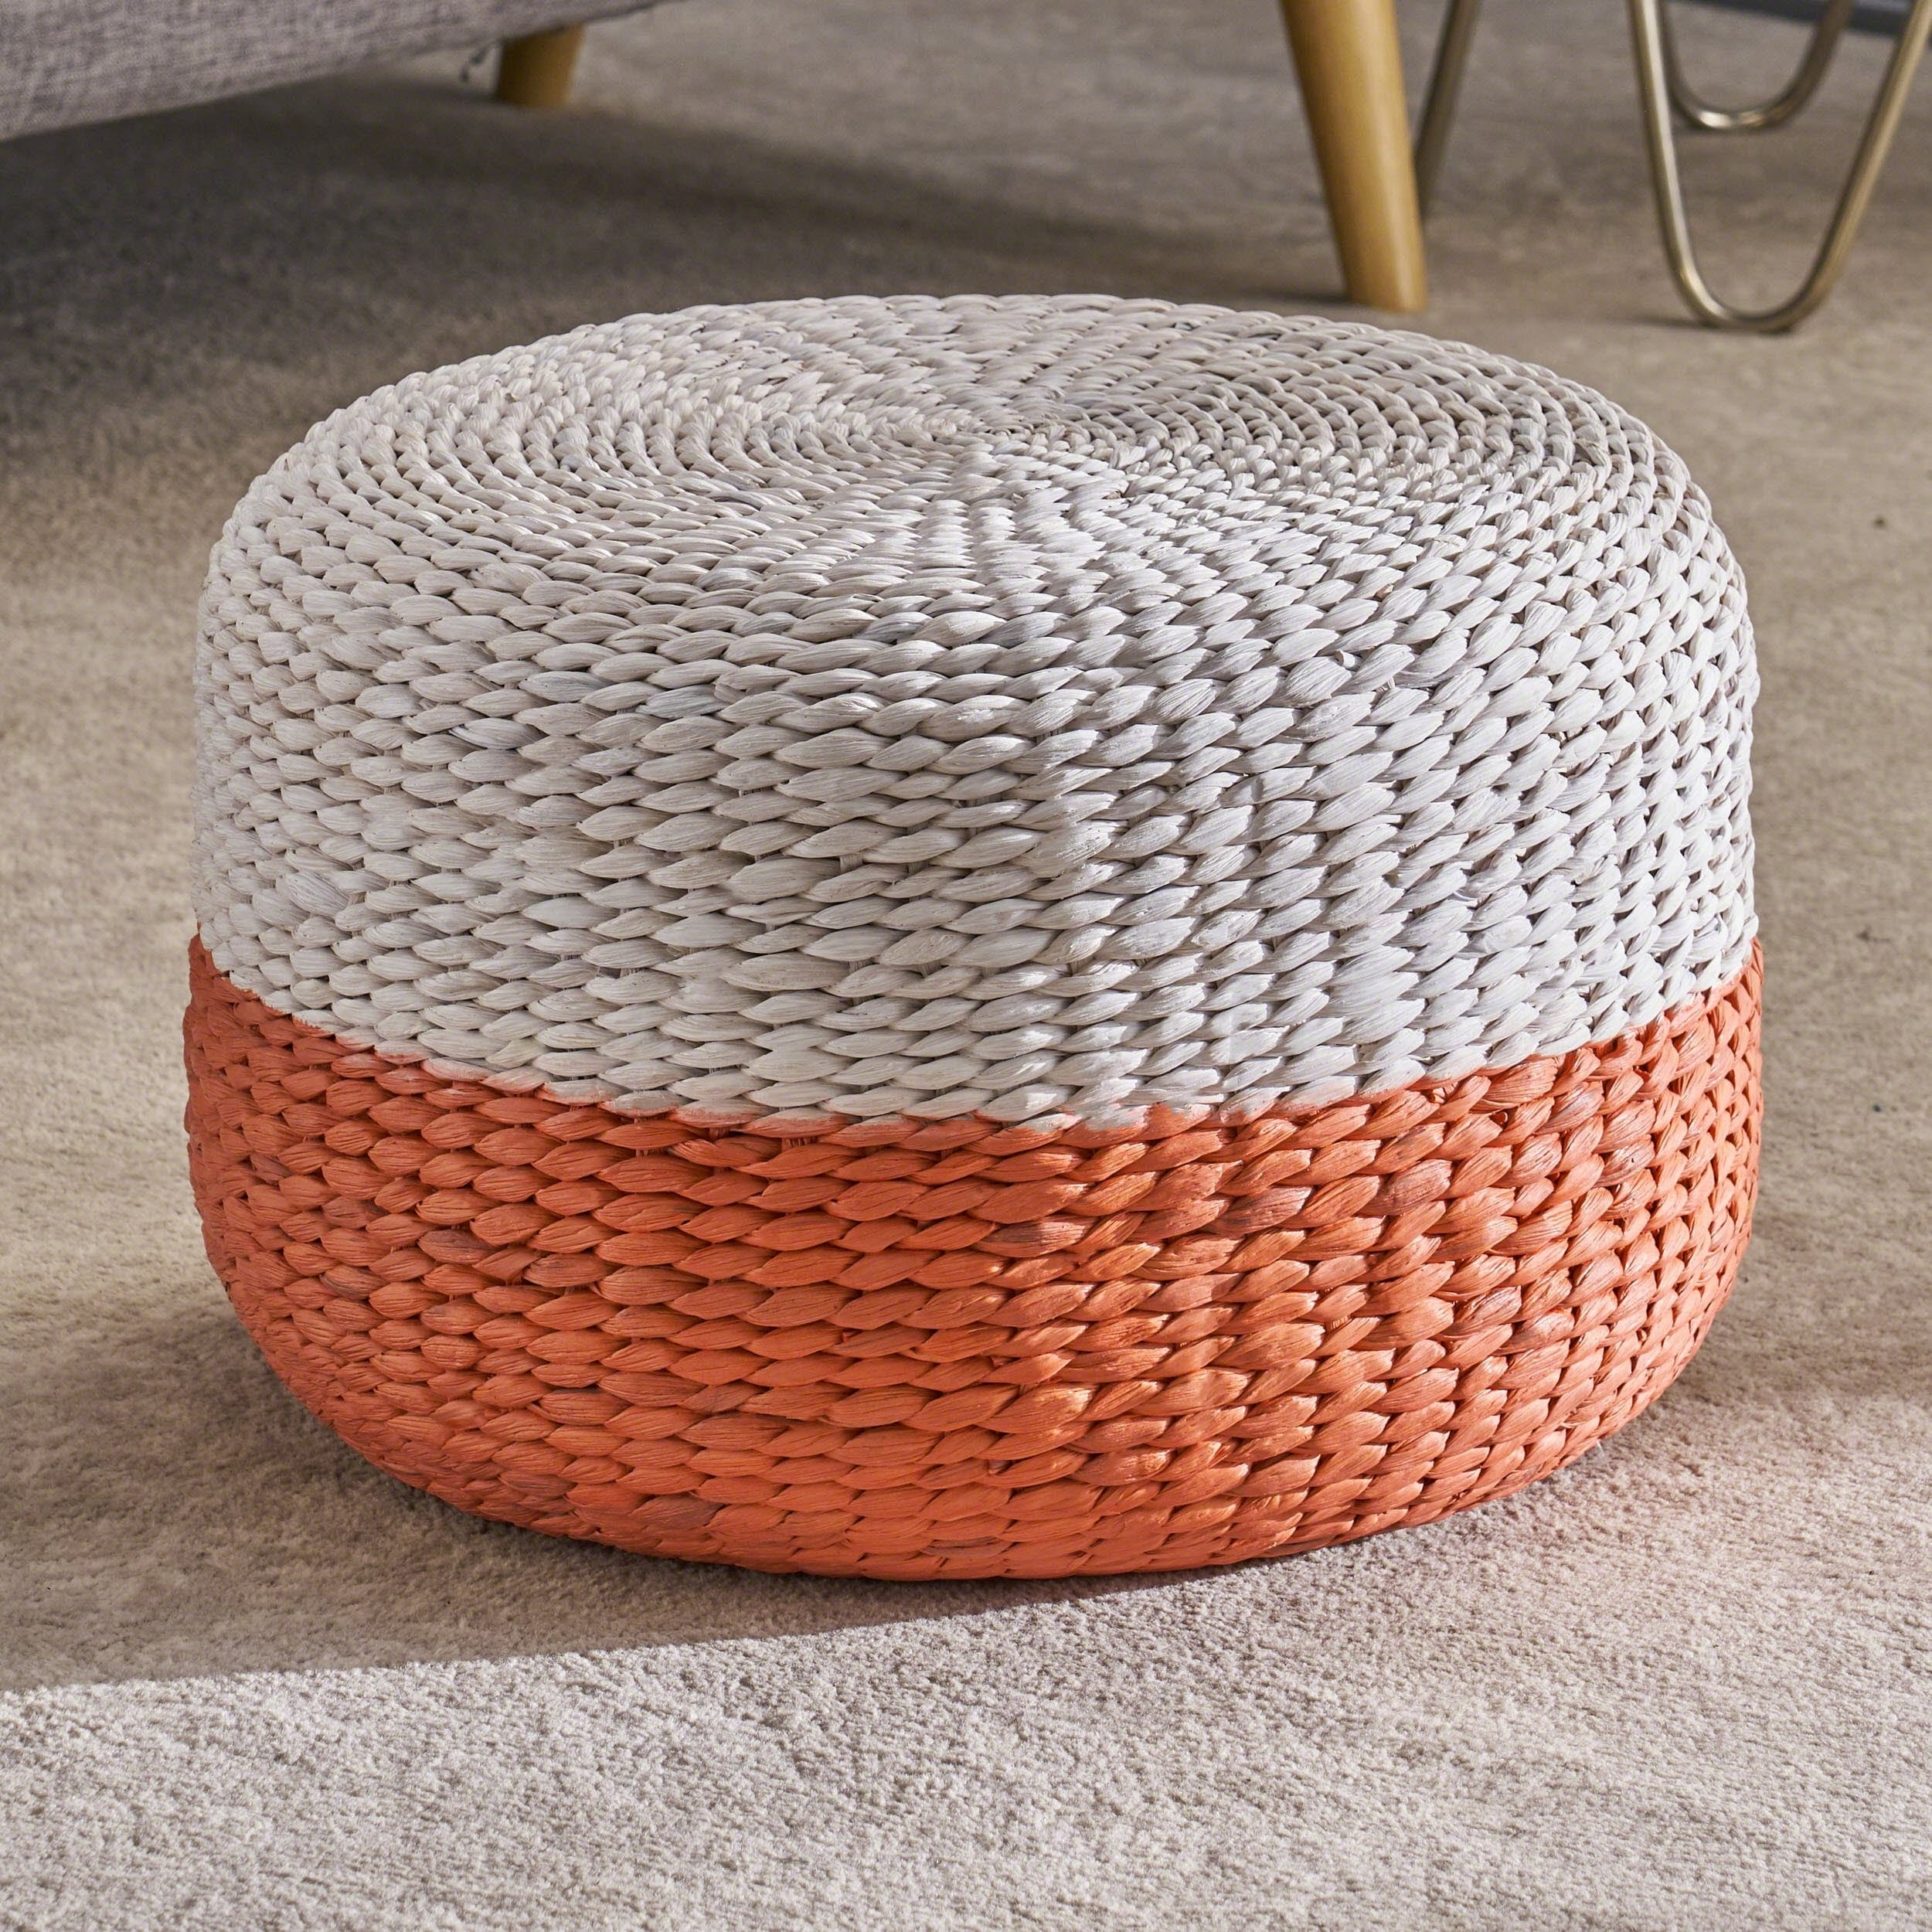 Admirable Stedman Water Hyacinth Foot Stool By Christopher Knight Home Pabps2019 Chair Design Images Pabps2019Com